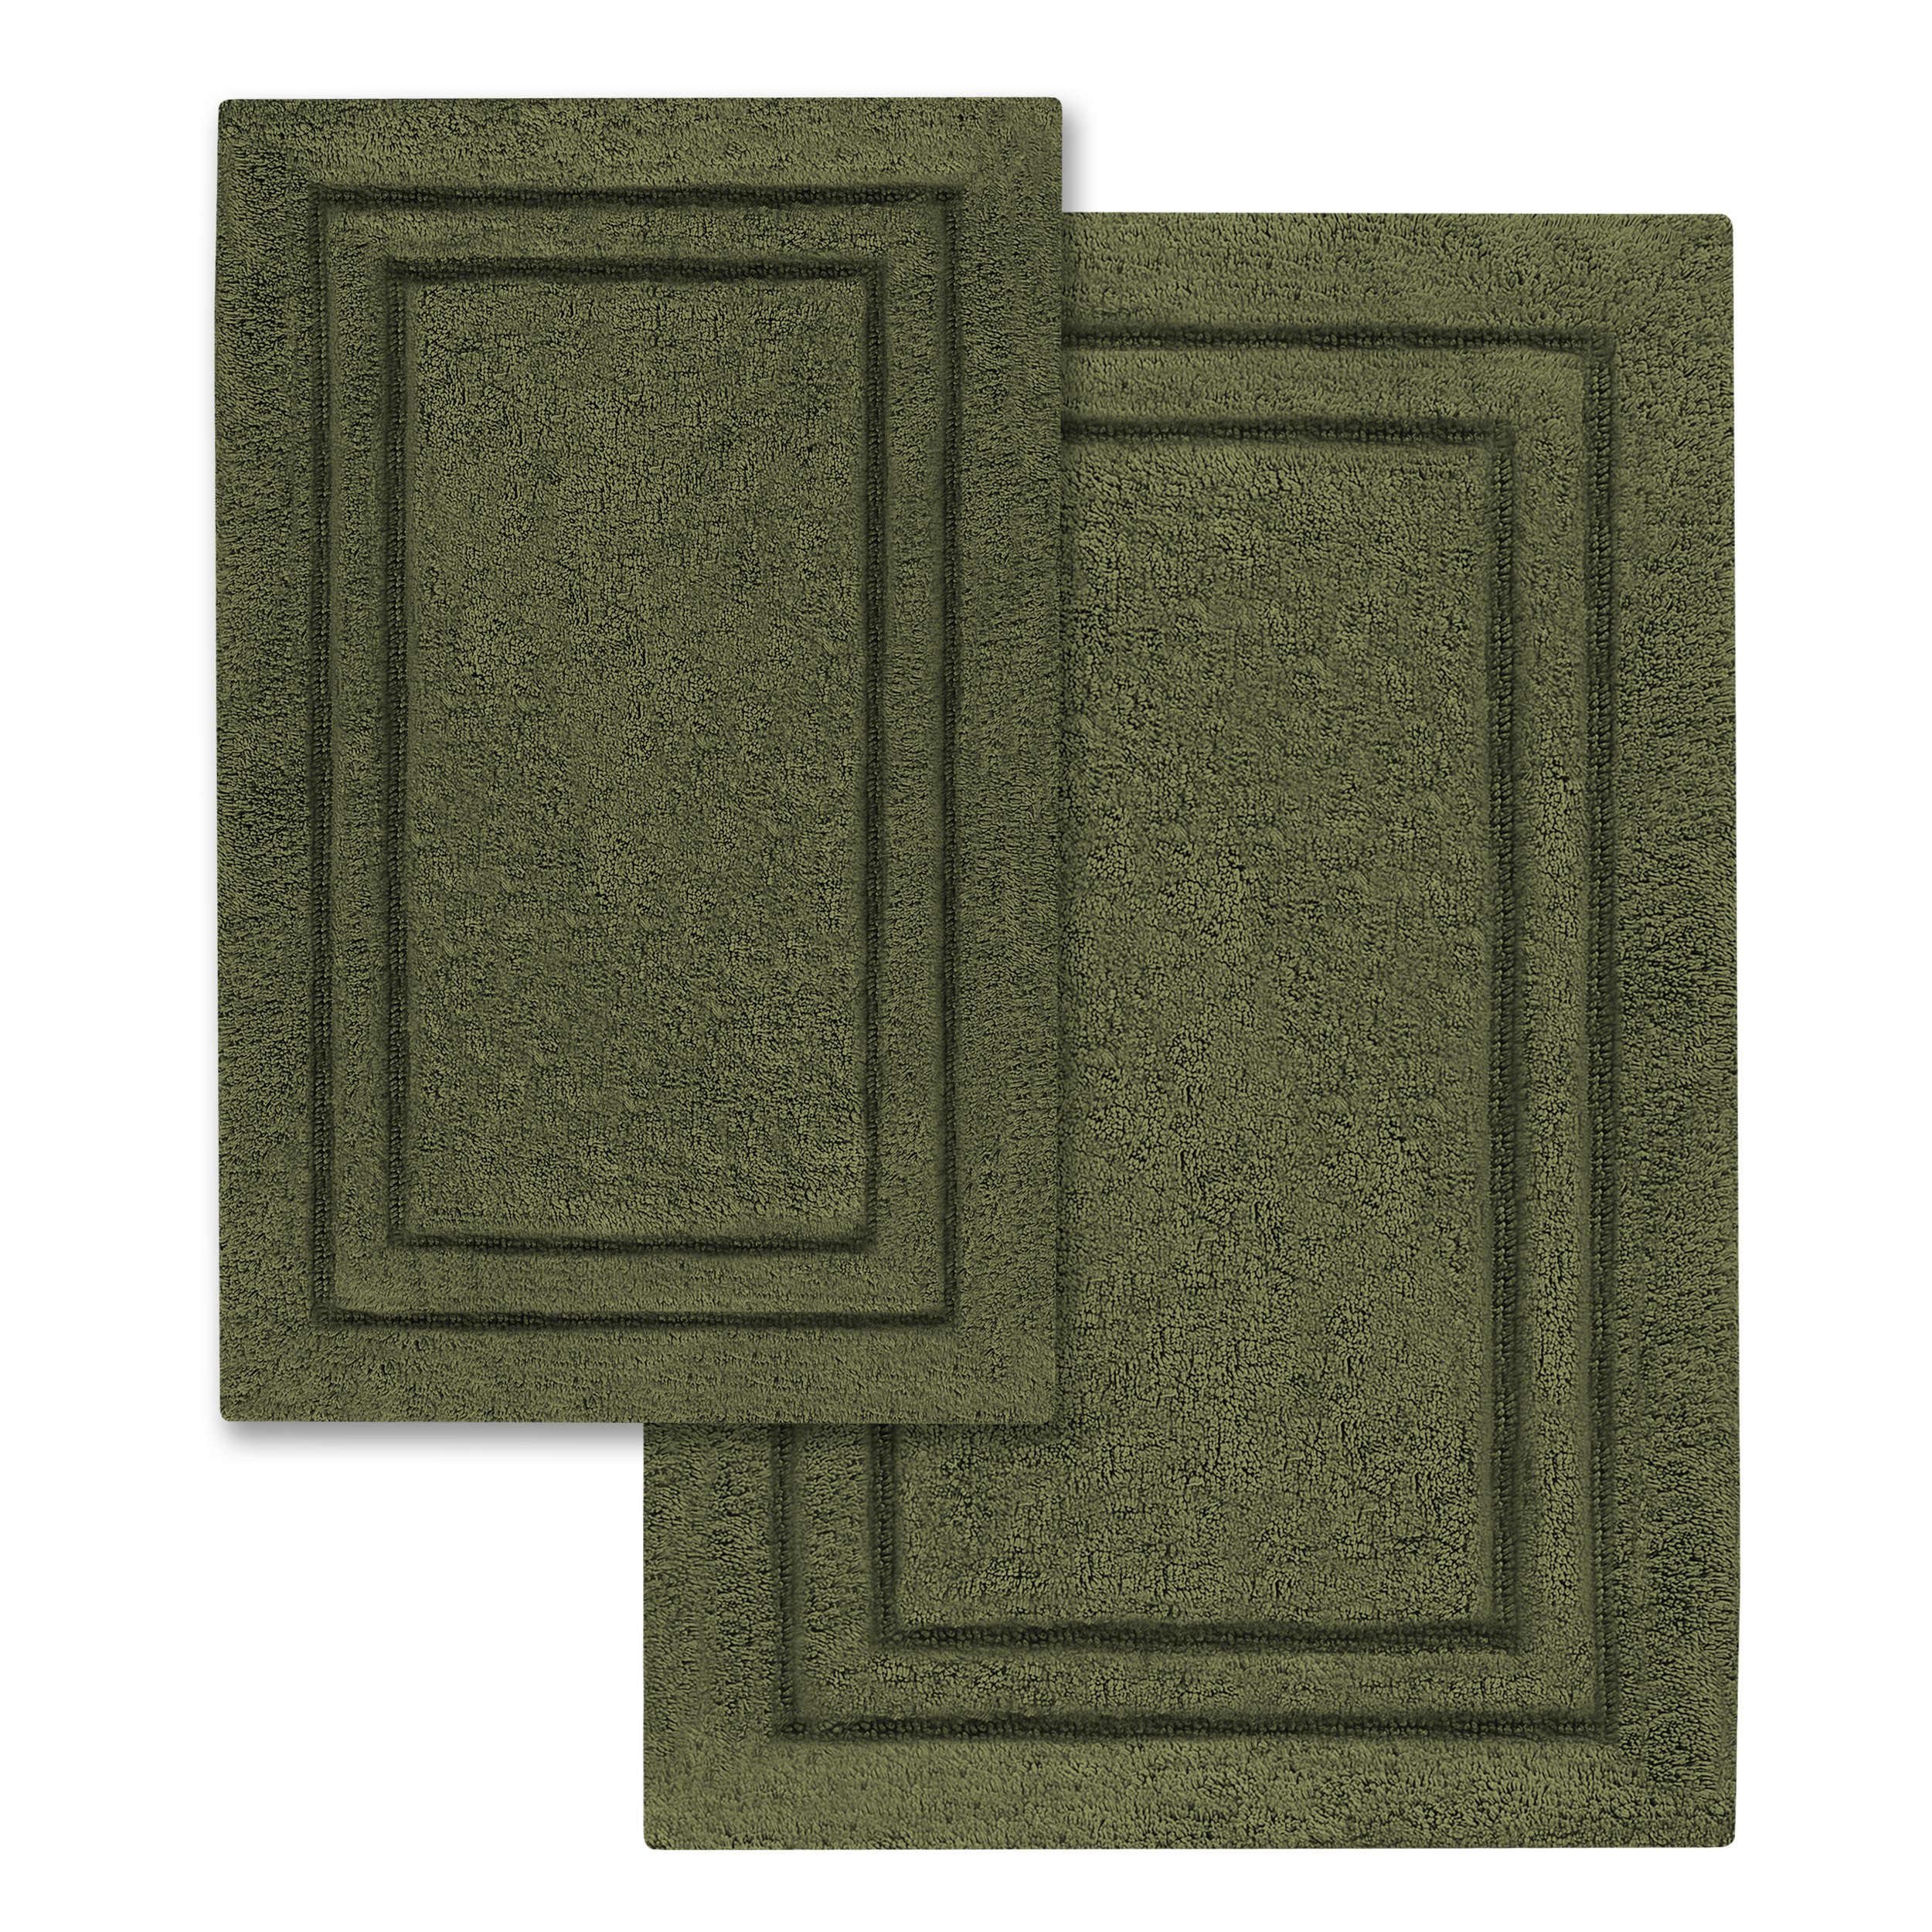 Superior 2-Pack Bath Rugs, Premium 100% Combed Cotton with Non-Slip Backing, Soft, Plush, Fast Drying and Absorbent - Forest Green, 20'' x 30'' and 24'' x 36'' Bath Mat Set